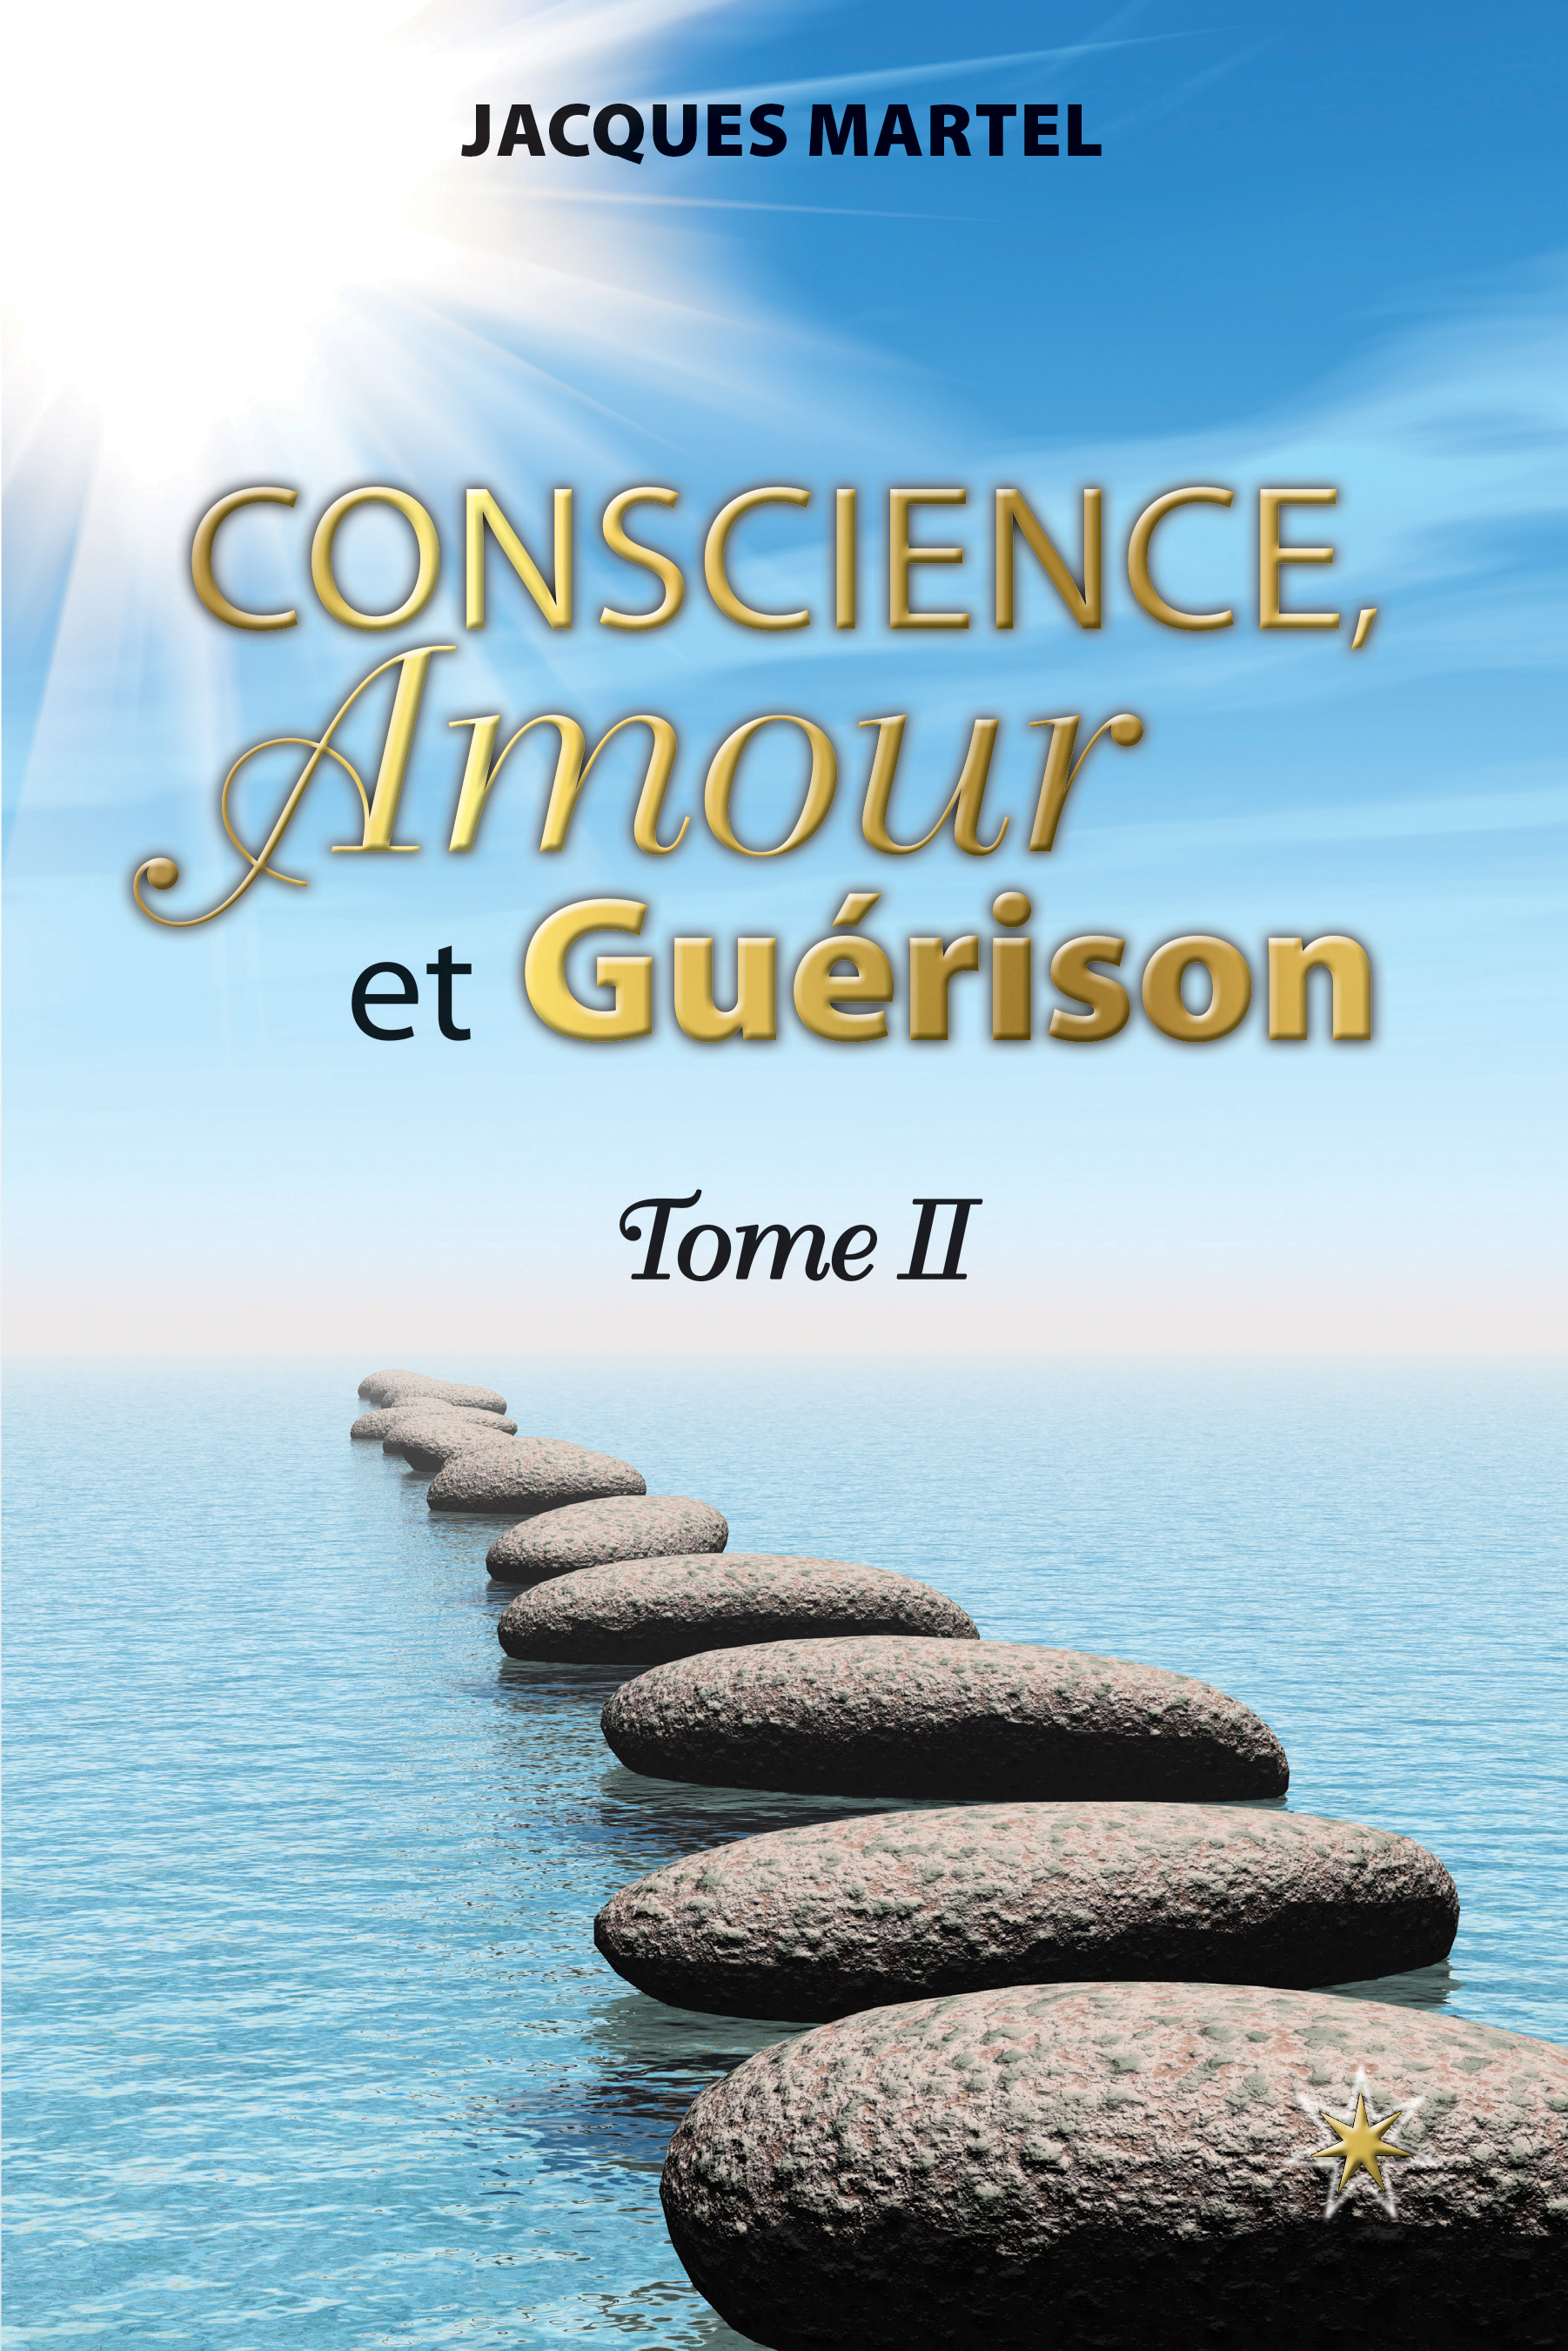 Conscience, Amour et Guérison, Tome II